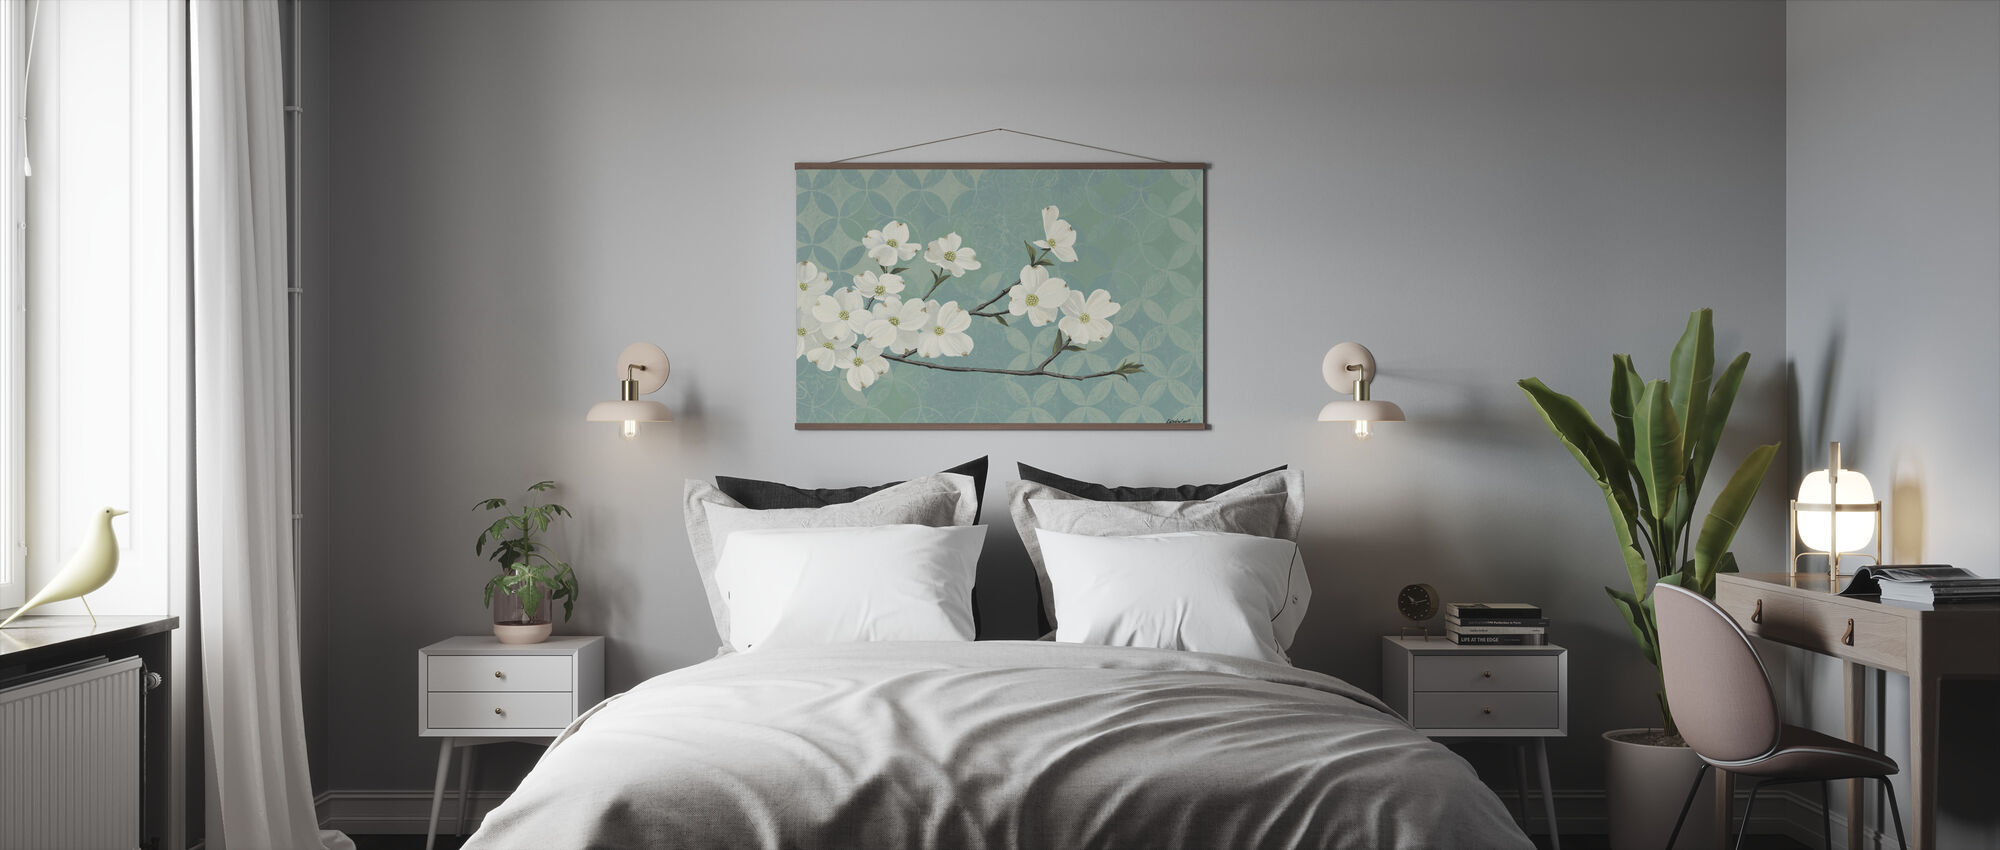 Dogwood Blossoms - Poster - Bedroom